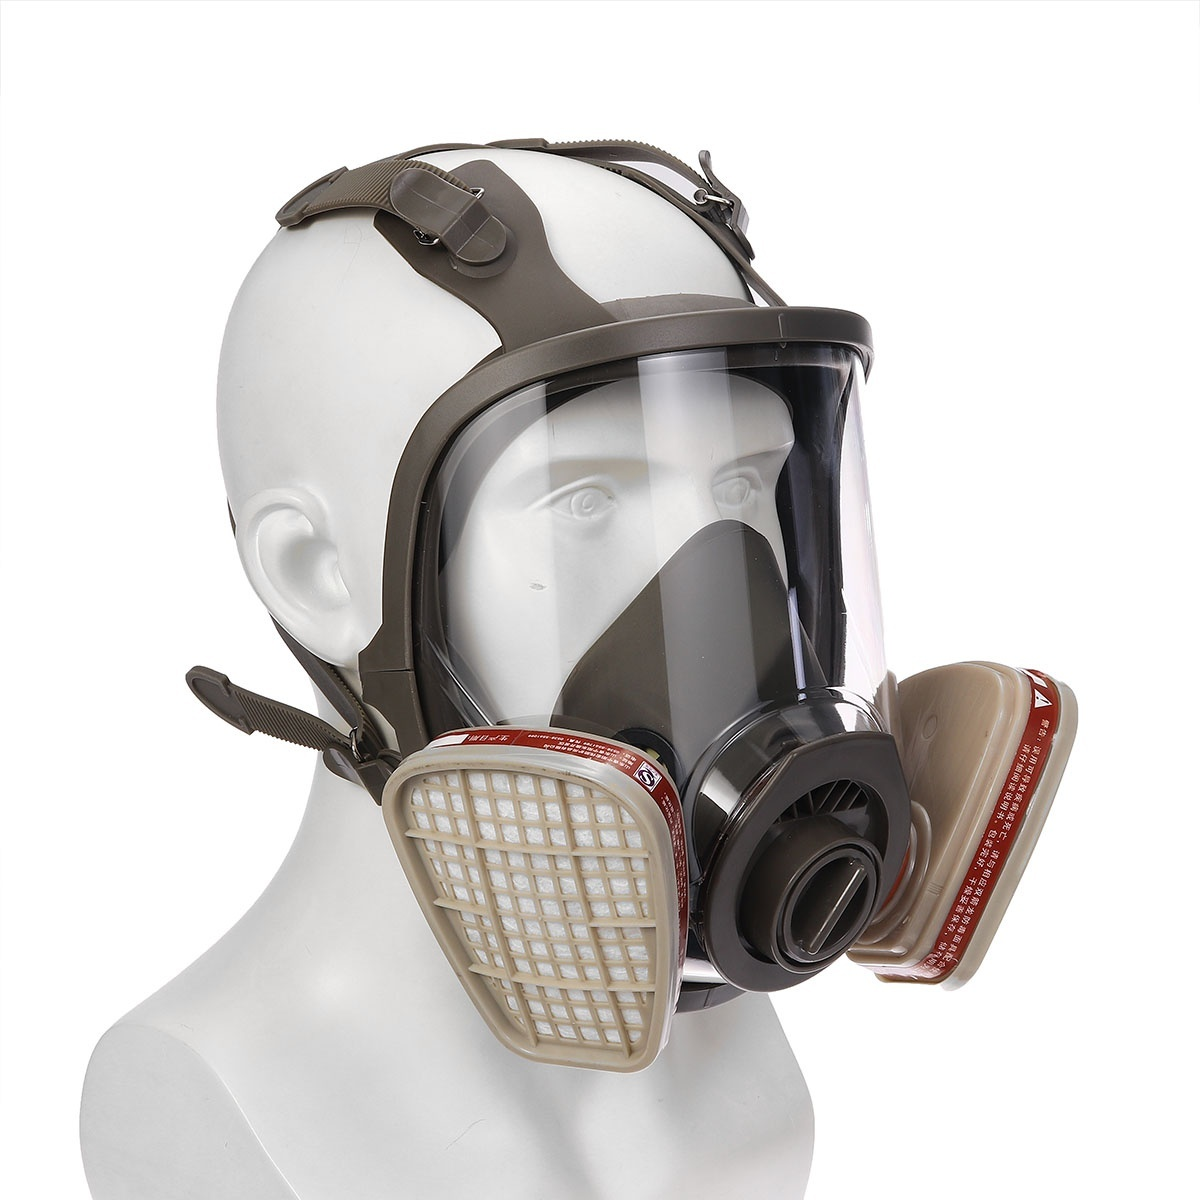 7IN1 Full Face 6800 Gas Mask Protect Painting Spraying Facepiece Respirator Set